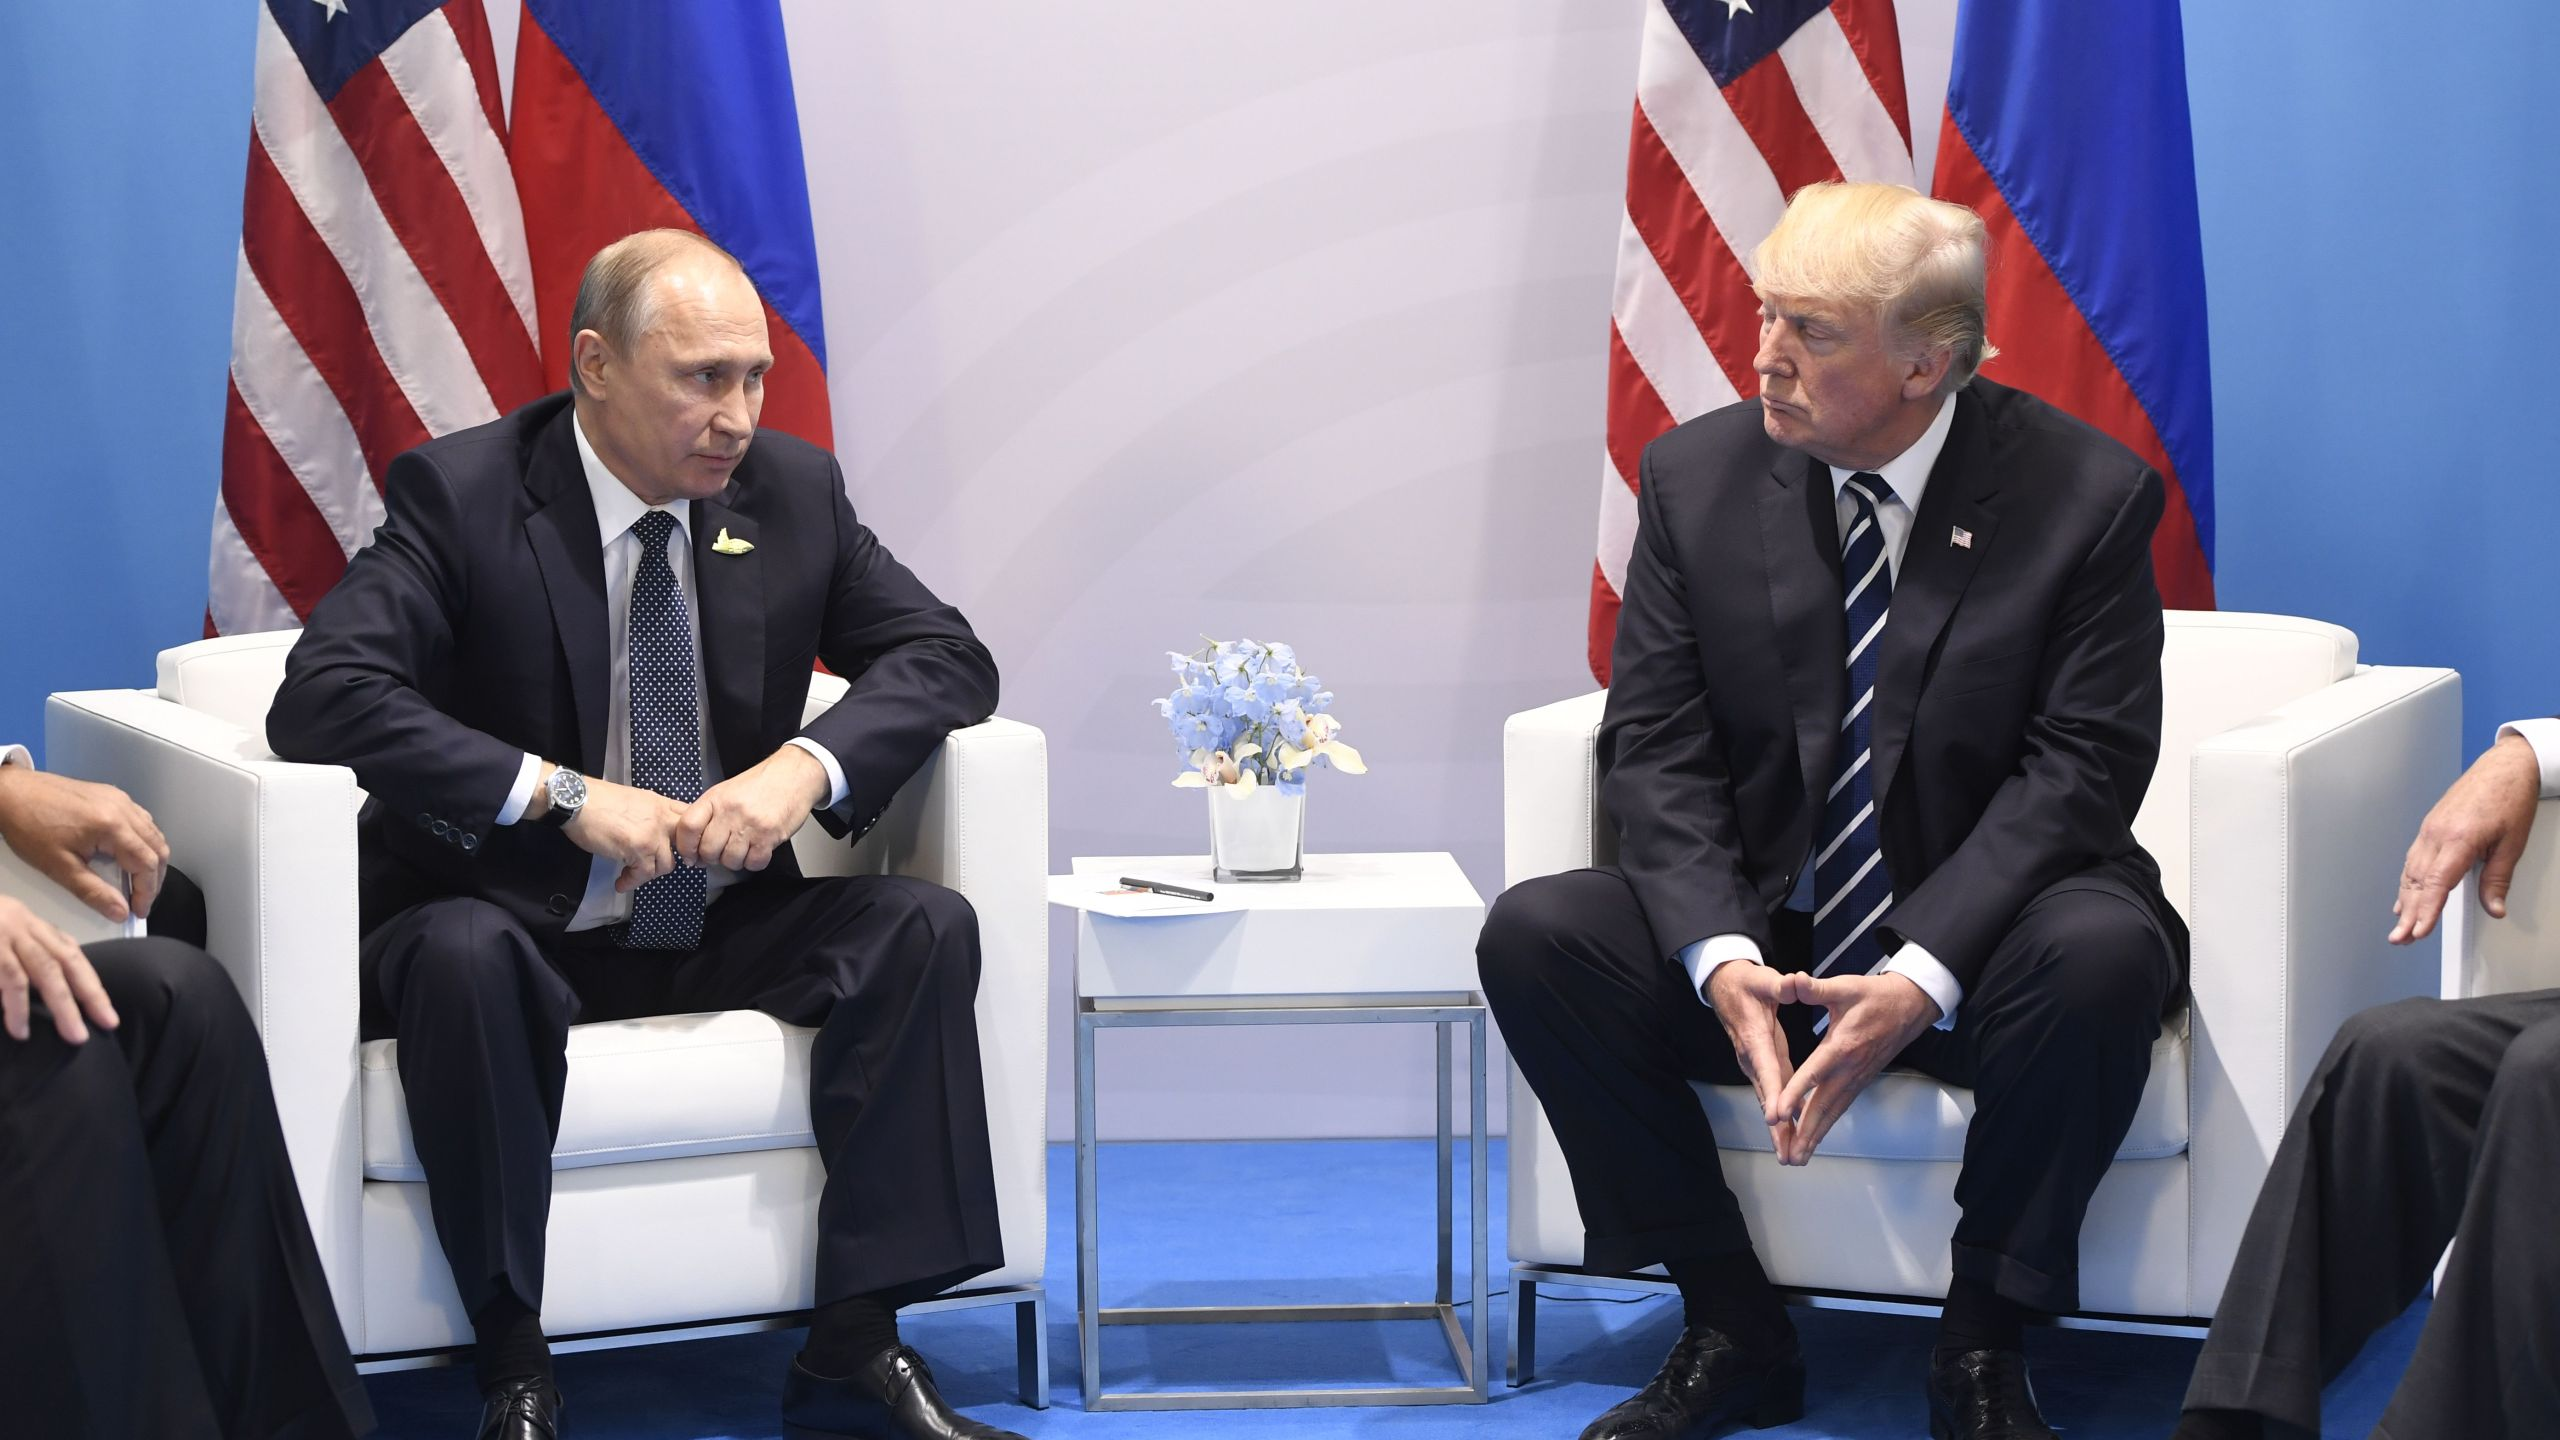 President Donald Trump and Russia's President Vladimir Putin hold a meeting on the sidelines of the G20 Summit in Hamburg, Germany, on July 7, 2017. (Credit: SAUL LOEB/AFP/Getty Images)